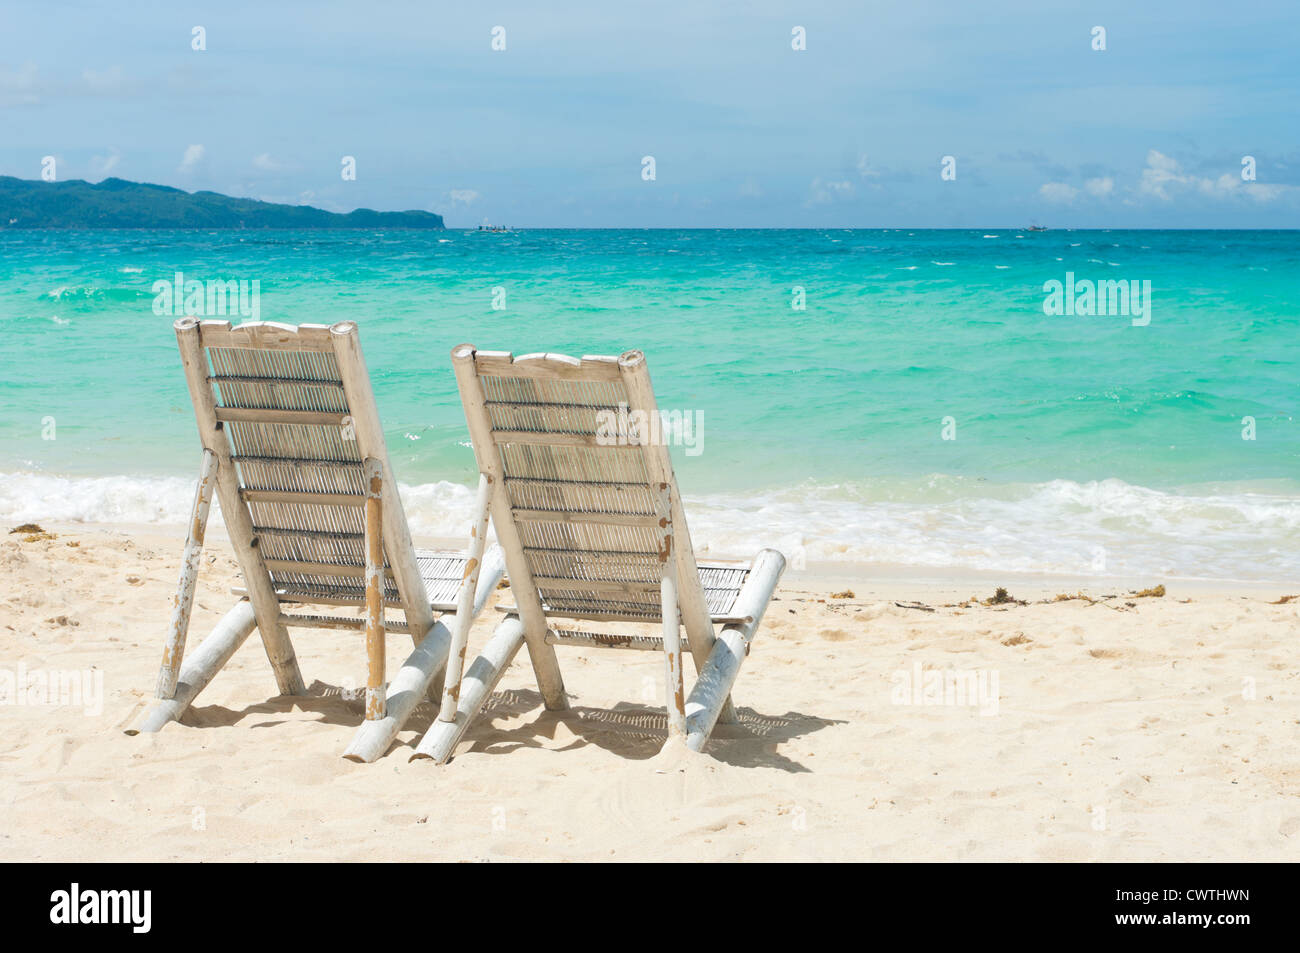 Tropical Beach With Two Beach Chairs Facing The Blue Sea